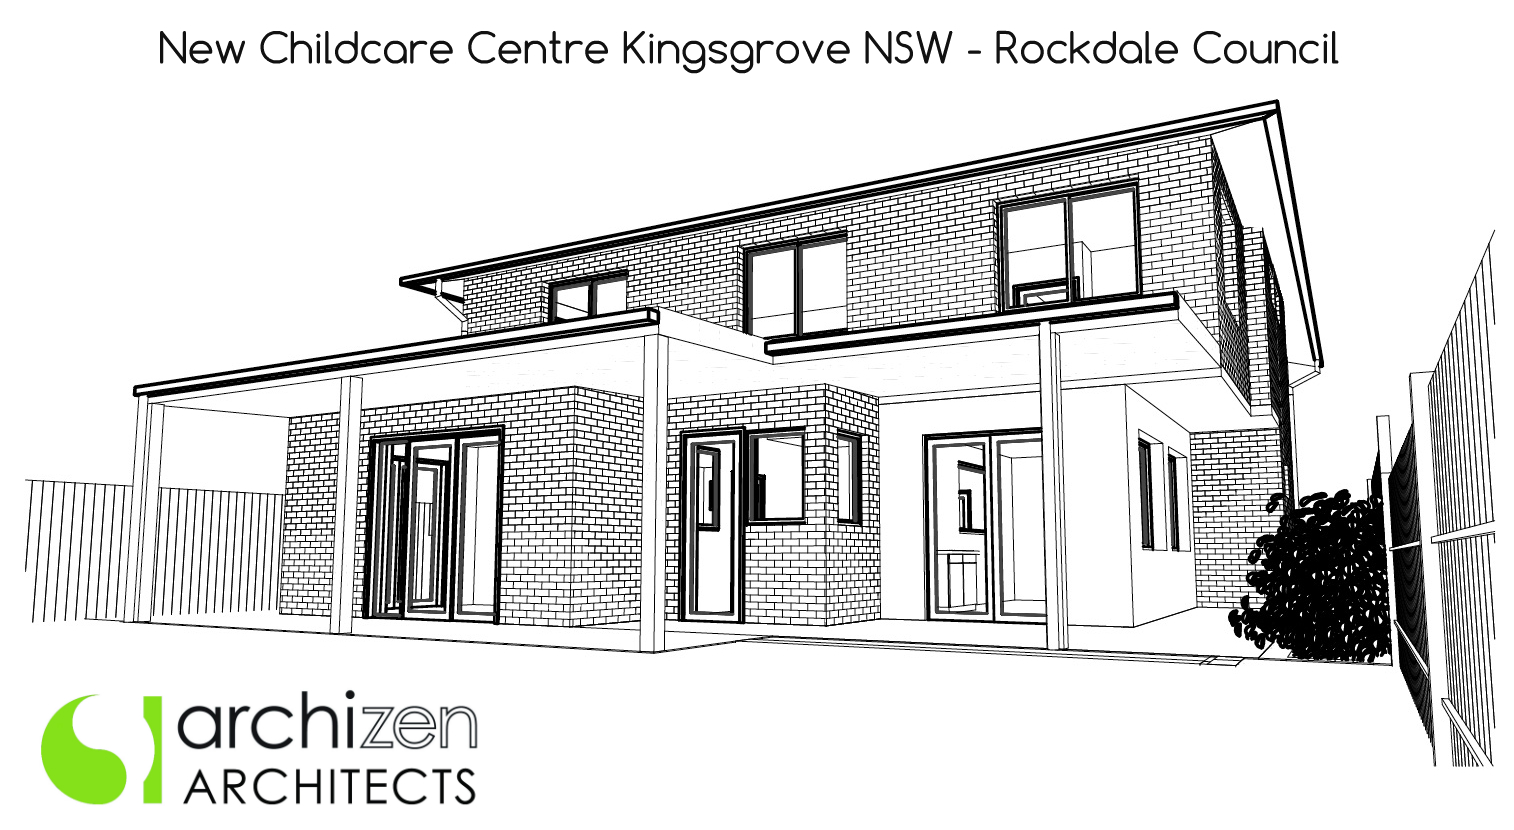 Archizen Architects New Childcare Centre design Rockdale Council Pre Schools Early learning Centre Education architectural design Sydney Melbourne Perth Adelaide Brisbane